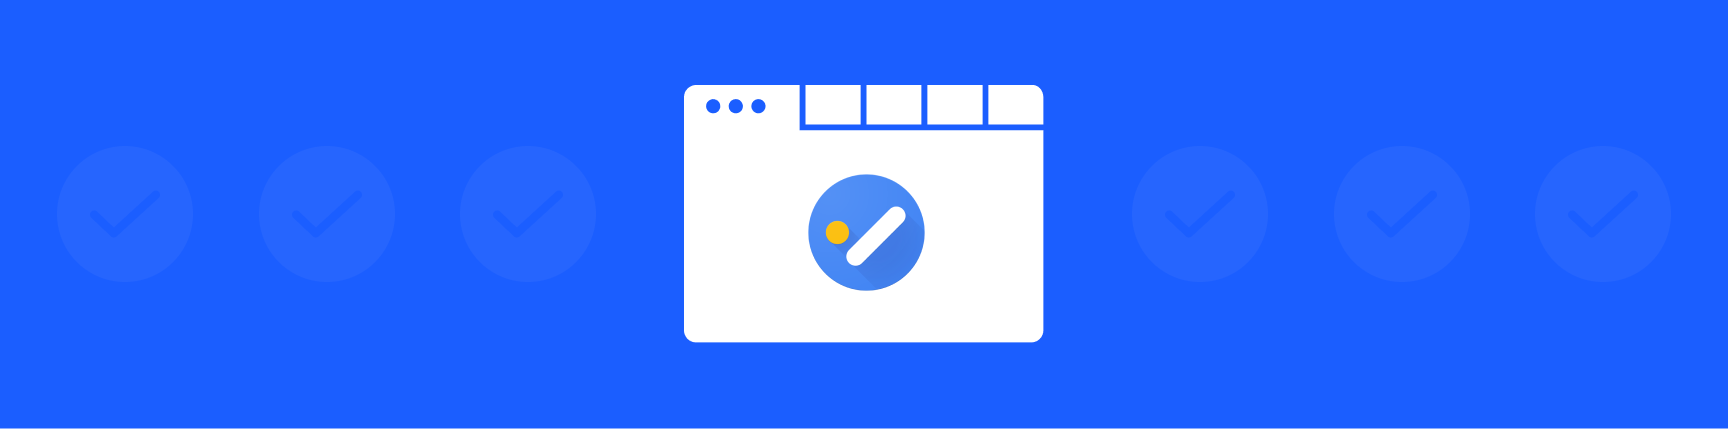 Google Tasks logo on white browser screen, surrounded by checkmark icons on a blue background